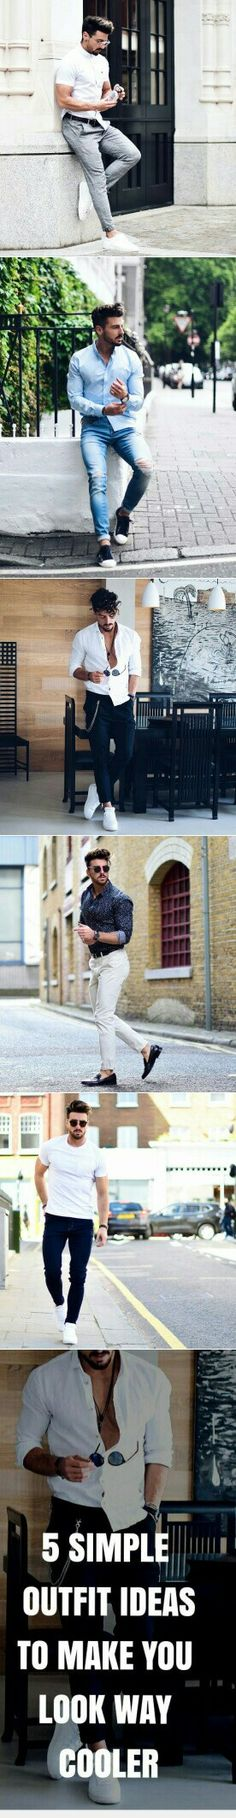 5 Outfit Ideas To Make You Look Way Cooler. #mens #fashion #style